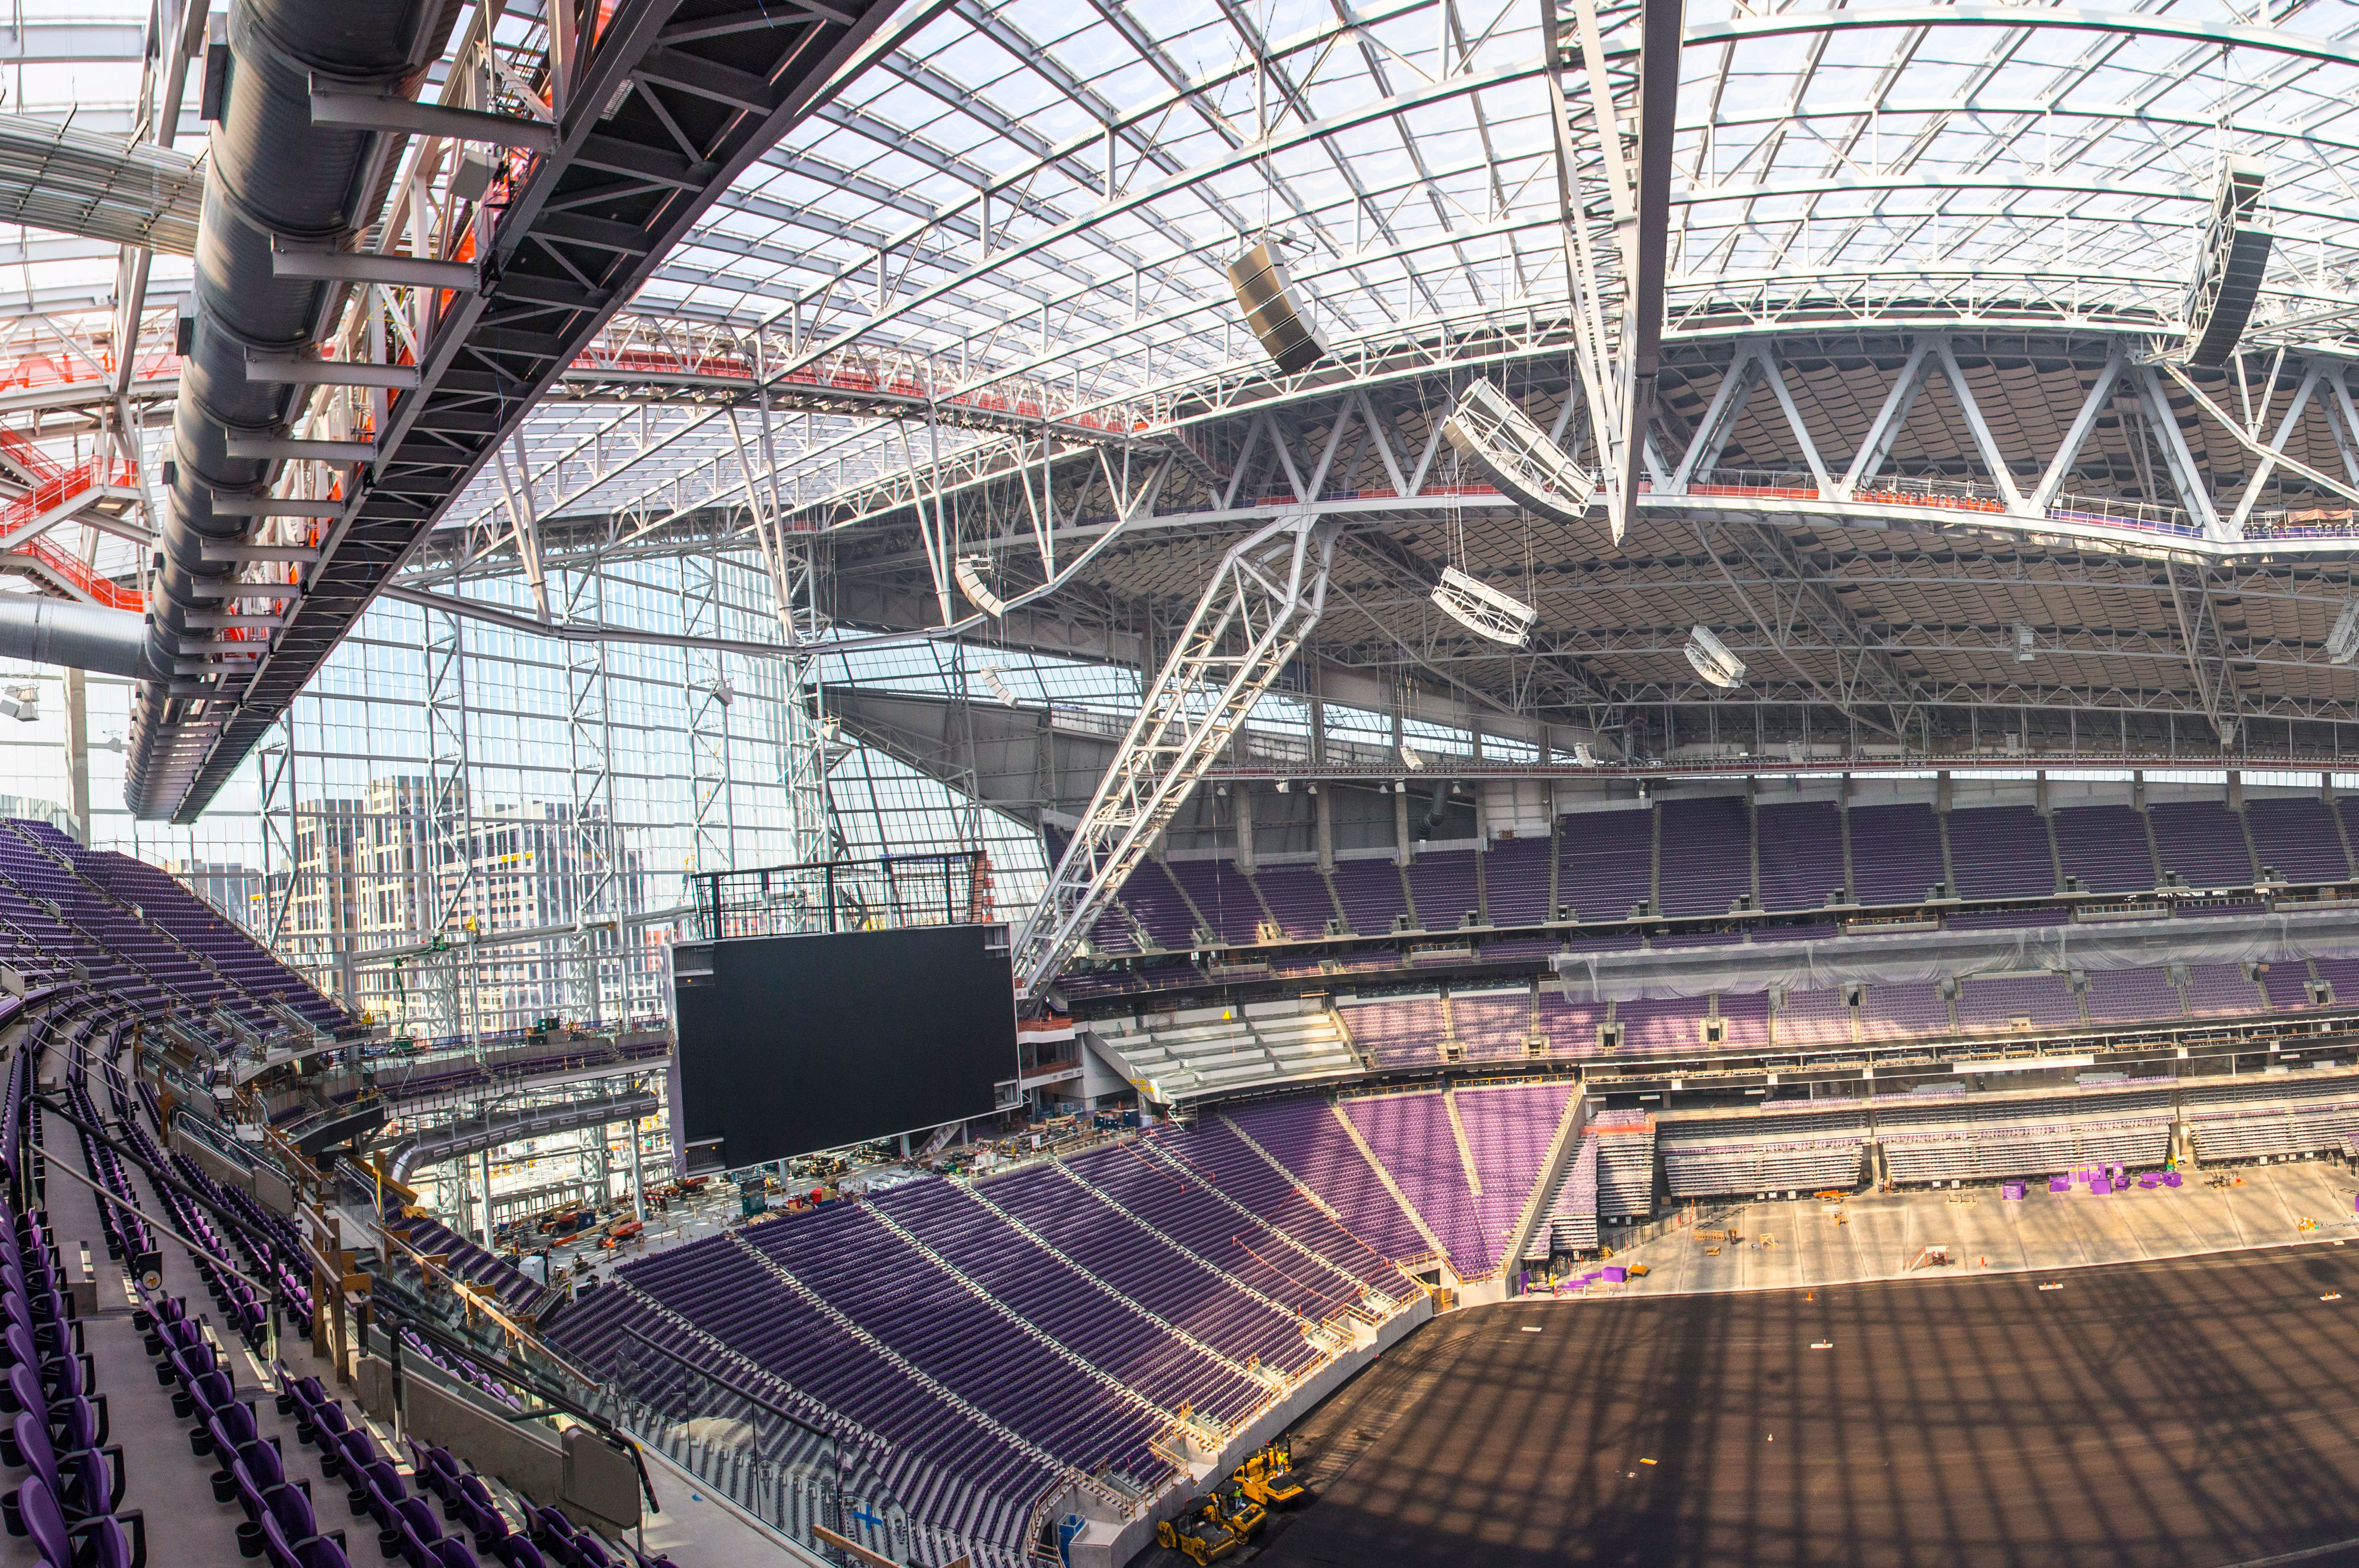 New Vikings Football Stadium First In The U.S. To Use Lightweight ETFE Film  Roof | Business Wire